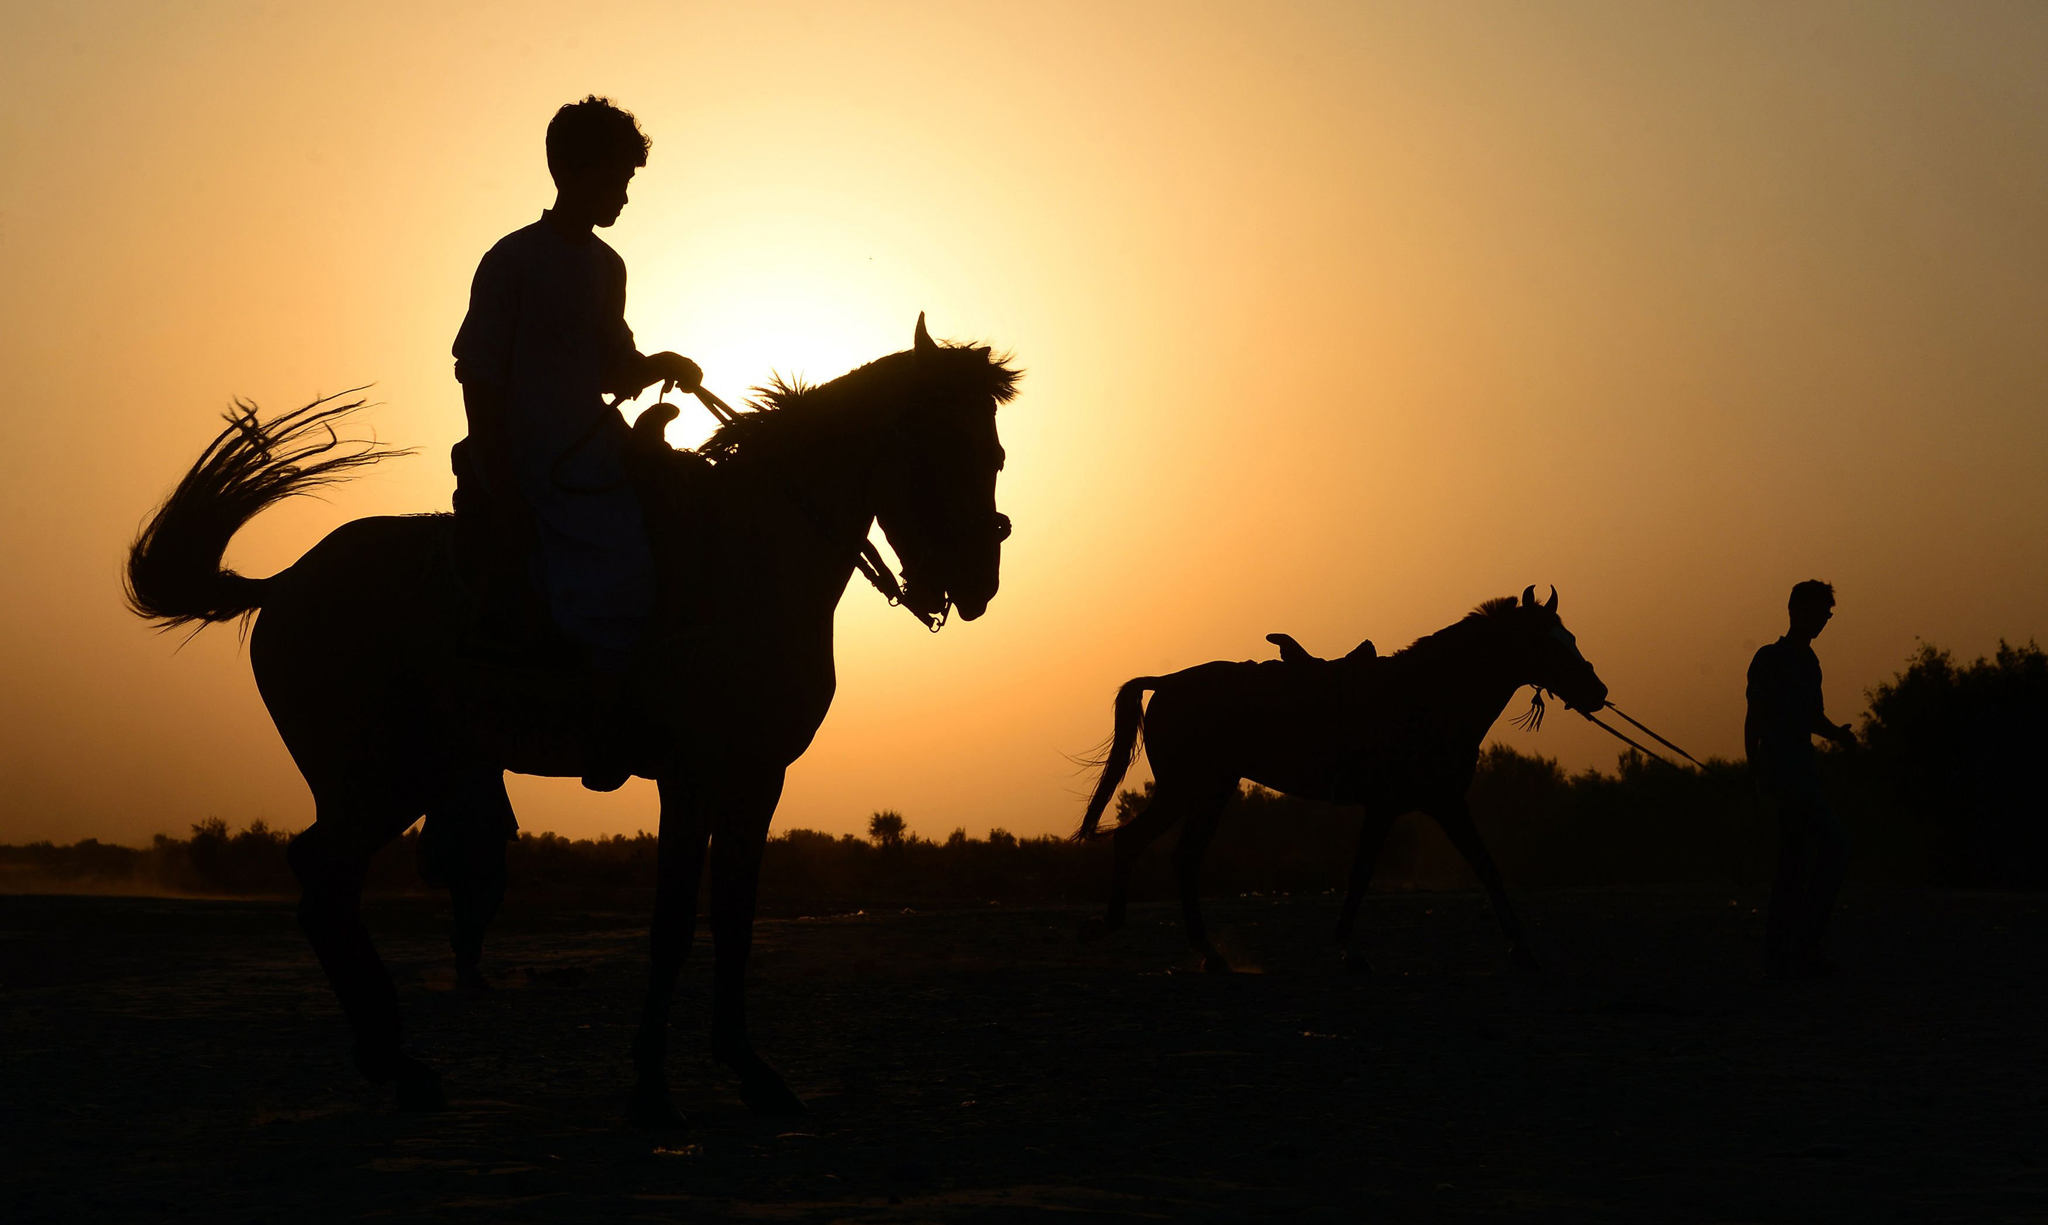 TOPSHOT - In this photograph taken on July 28, 2016, an Afghan man rides a horse as another one leads his horse as the sun sets in Injil district of Herat province. / AFP PHOTO / AREF KARIMIAREF KARIMI/AFP/Getty Images